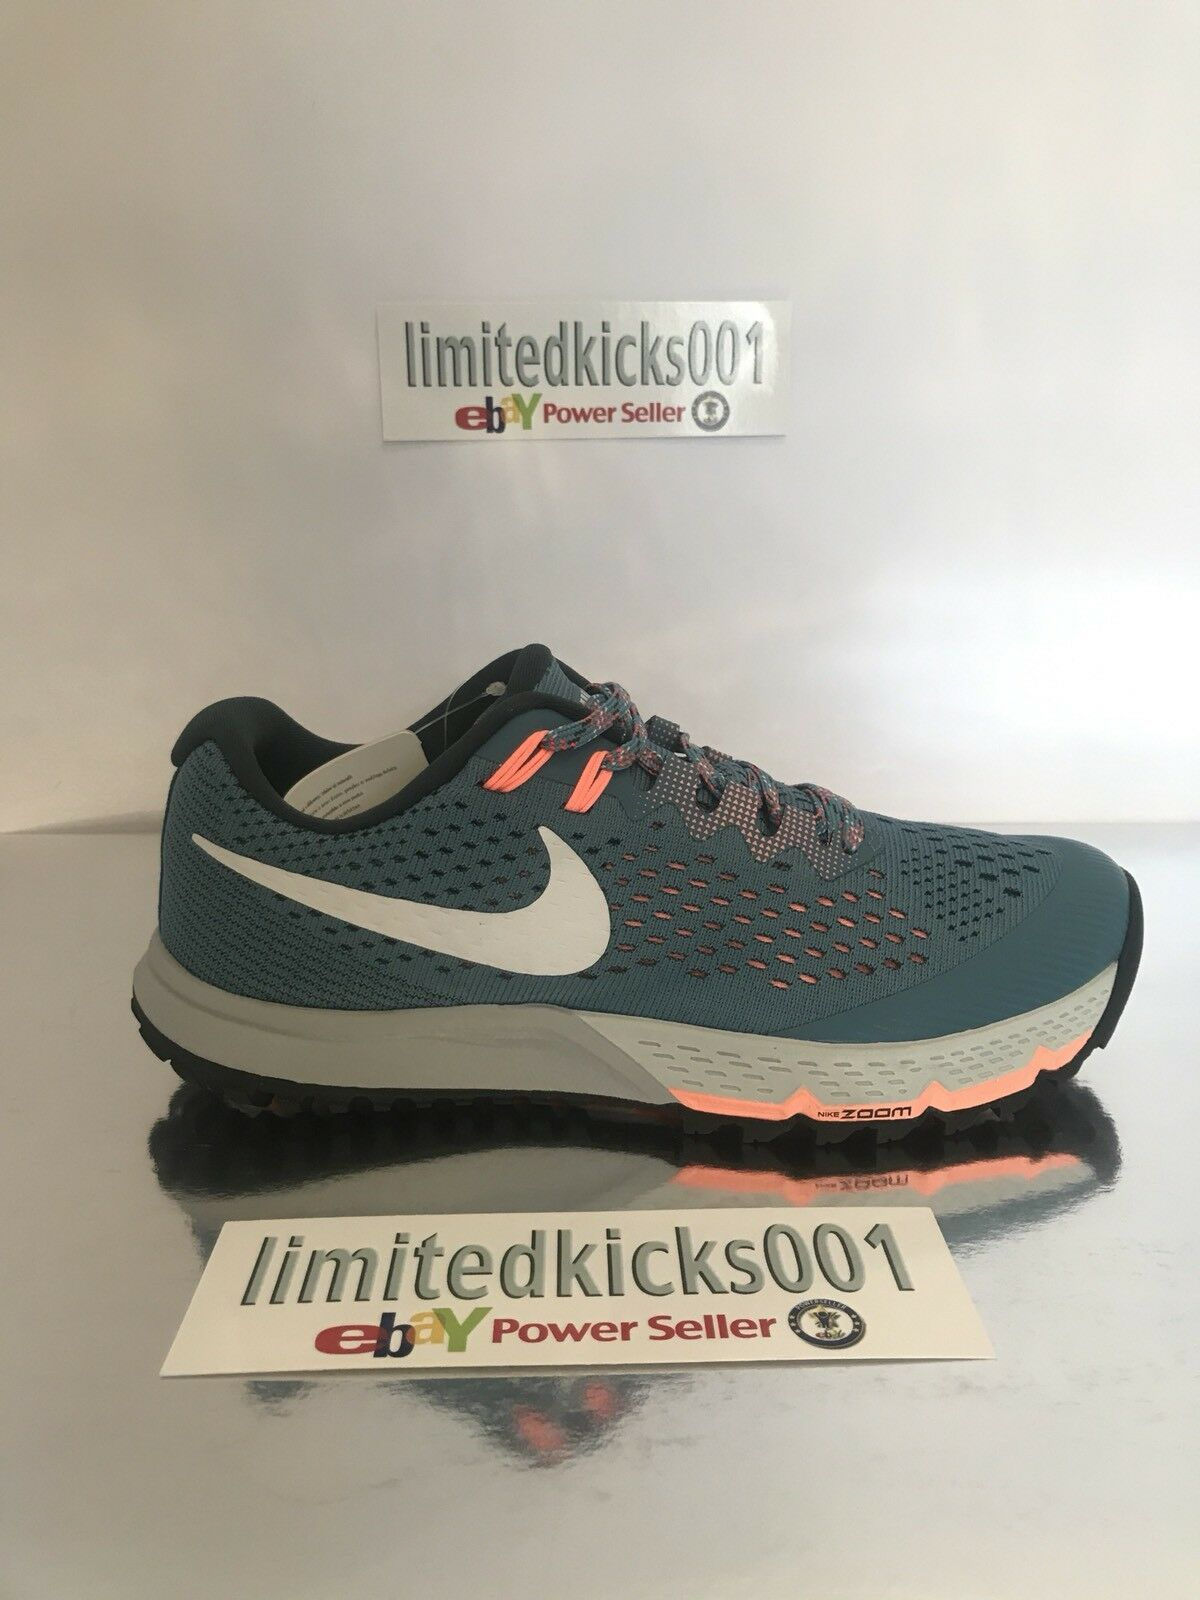 cf15c2e6e2ec ... denmark bnwt nike air zoom terra kiger 4 blue orange womens trail  trainers shoes sz 5.5